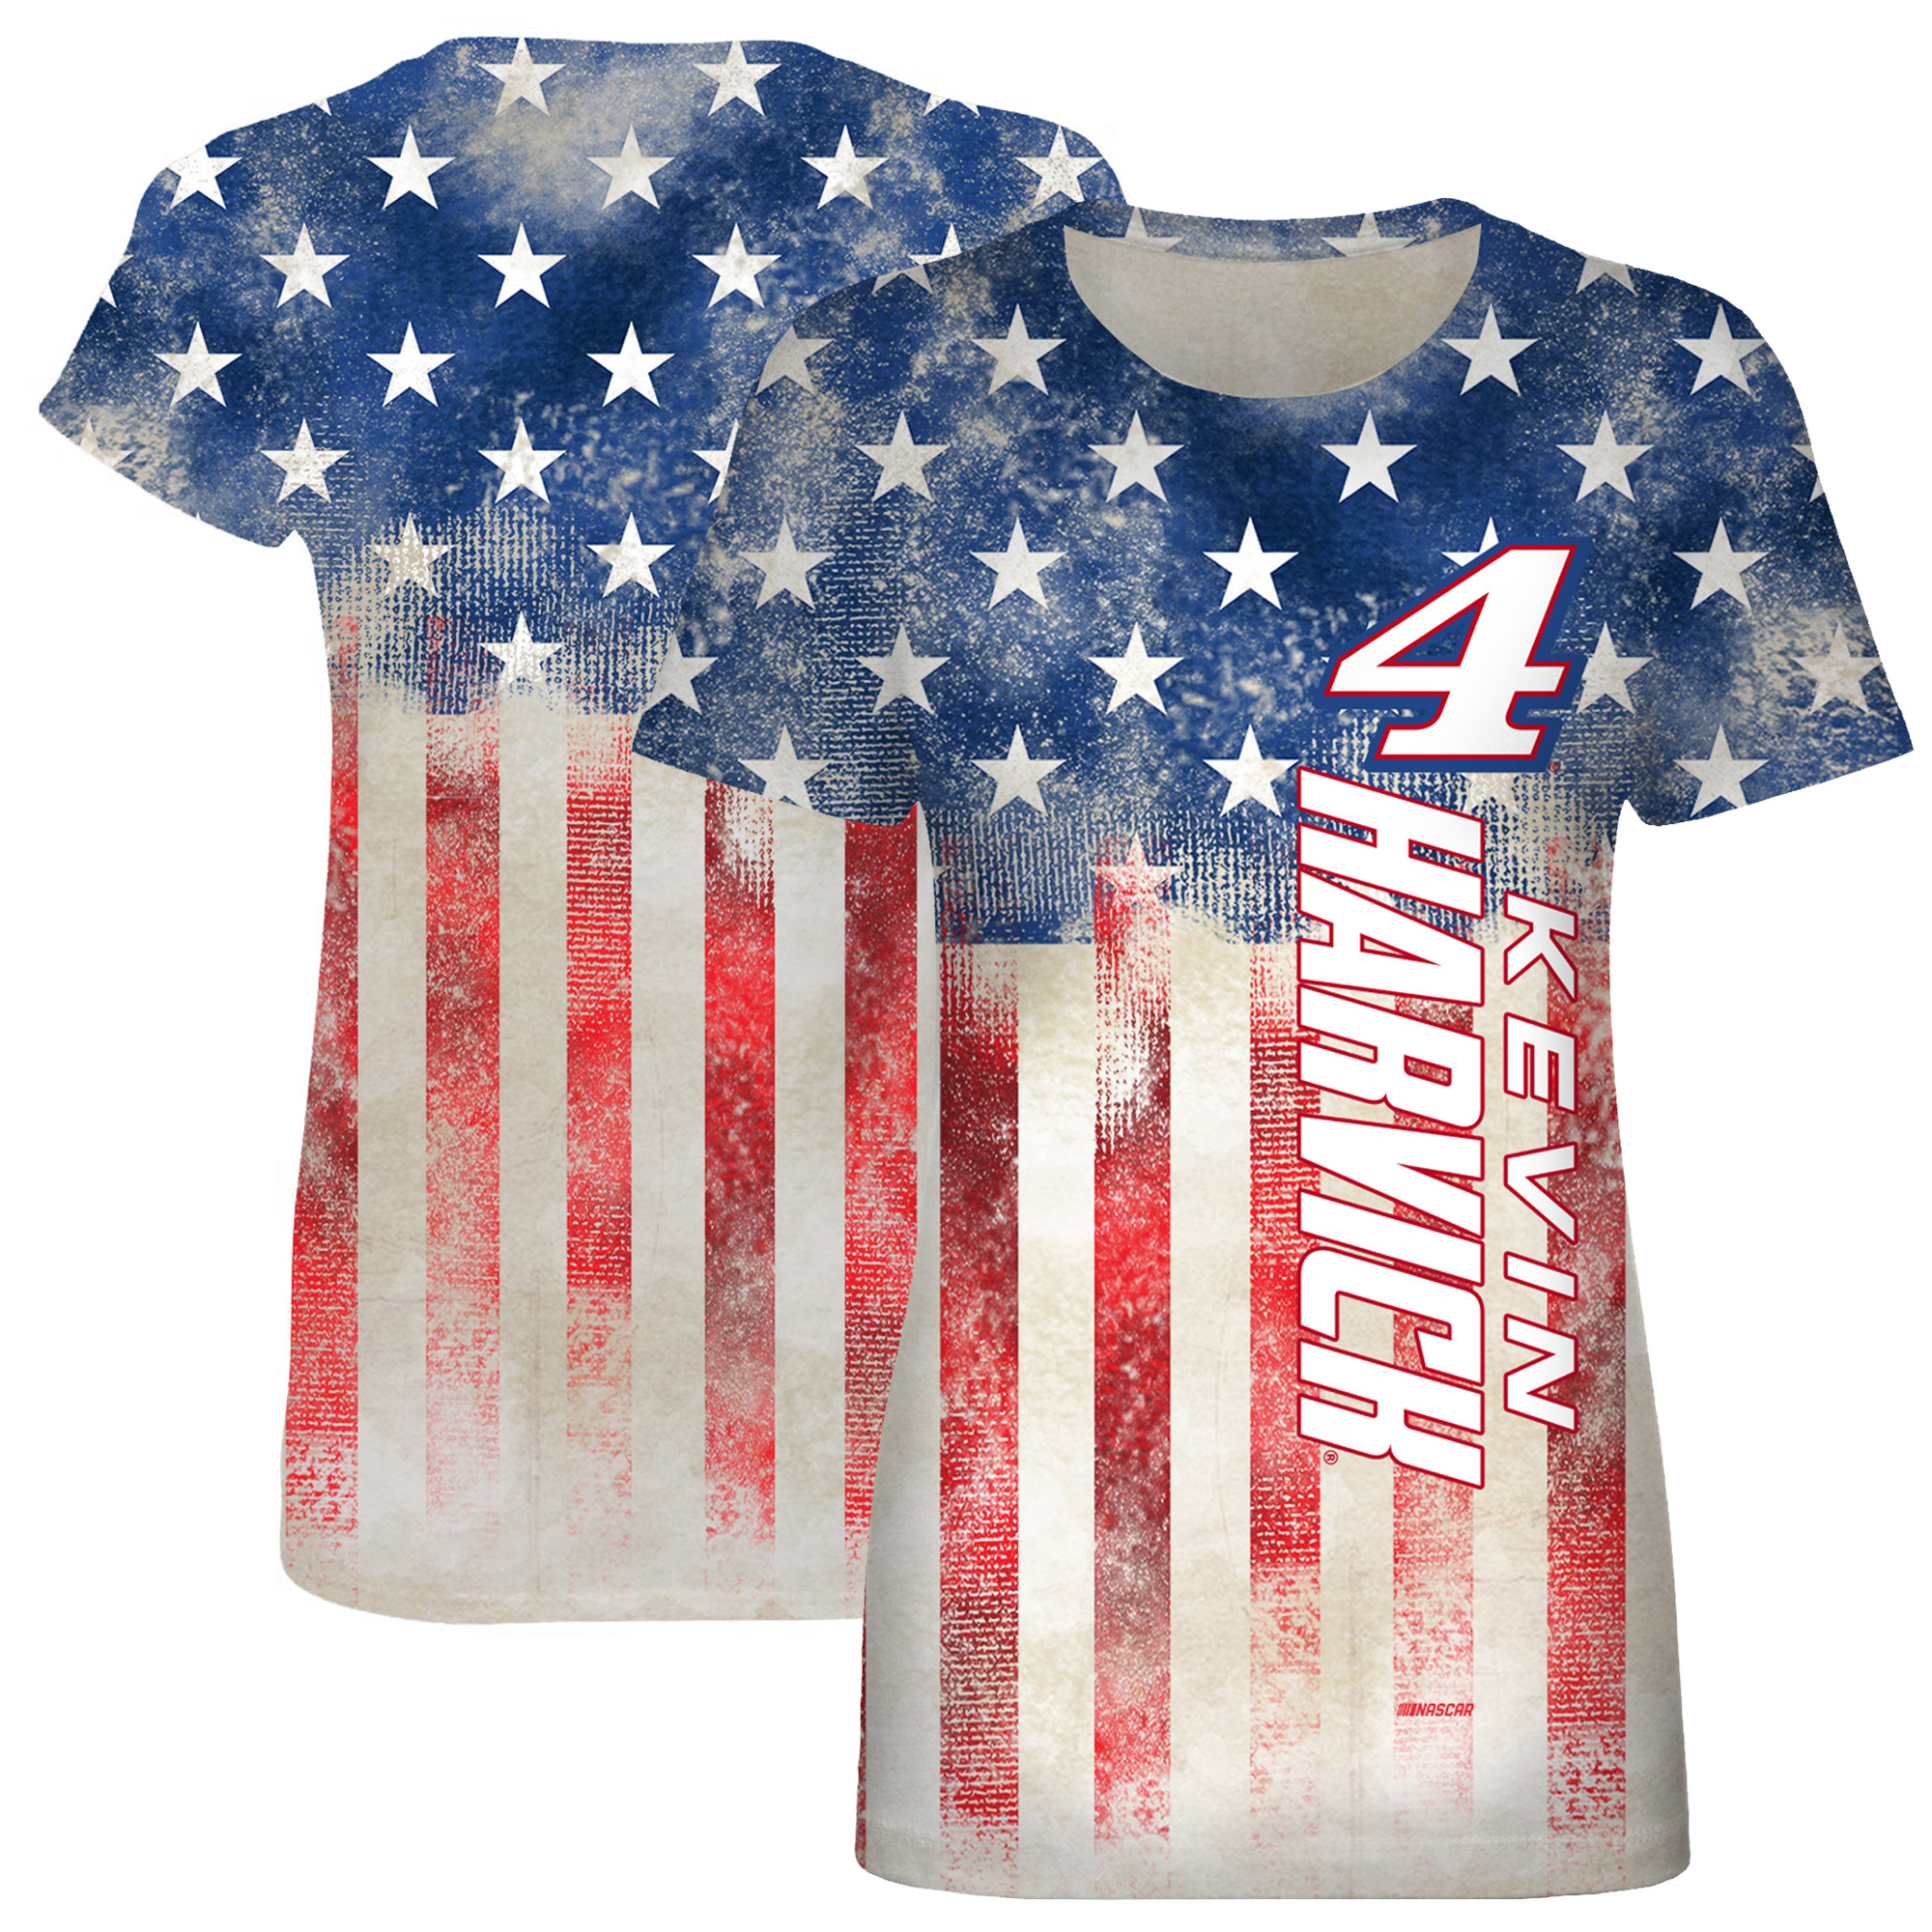 Kevin Harvick Women's Patriotic Sublimated T-Shirt - Red/Navy